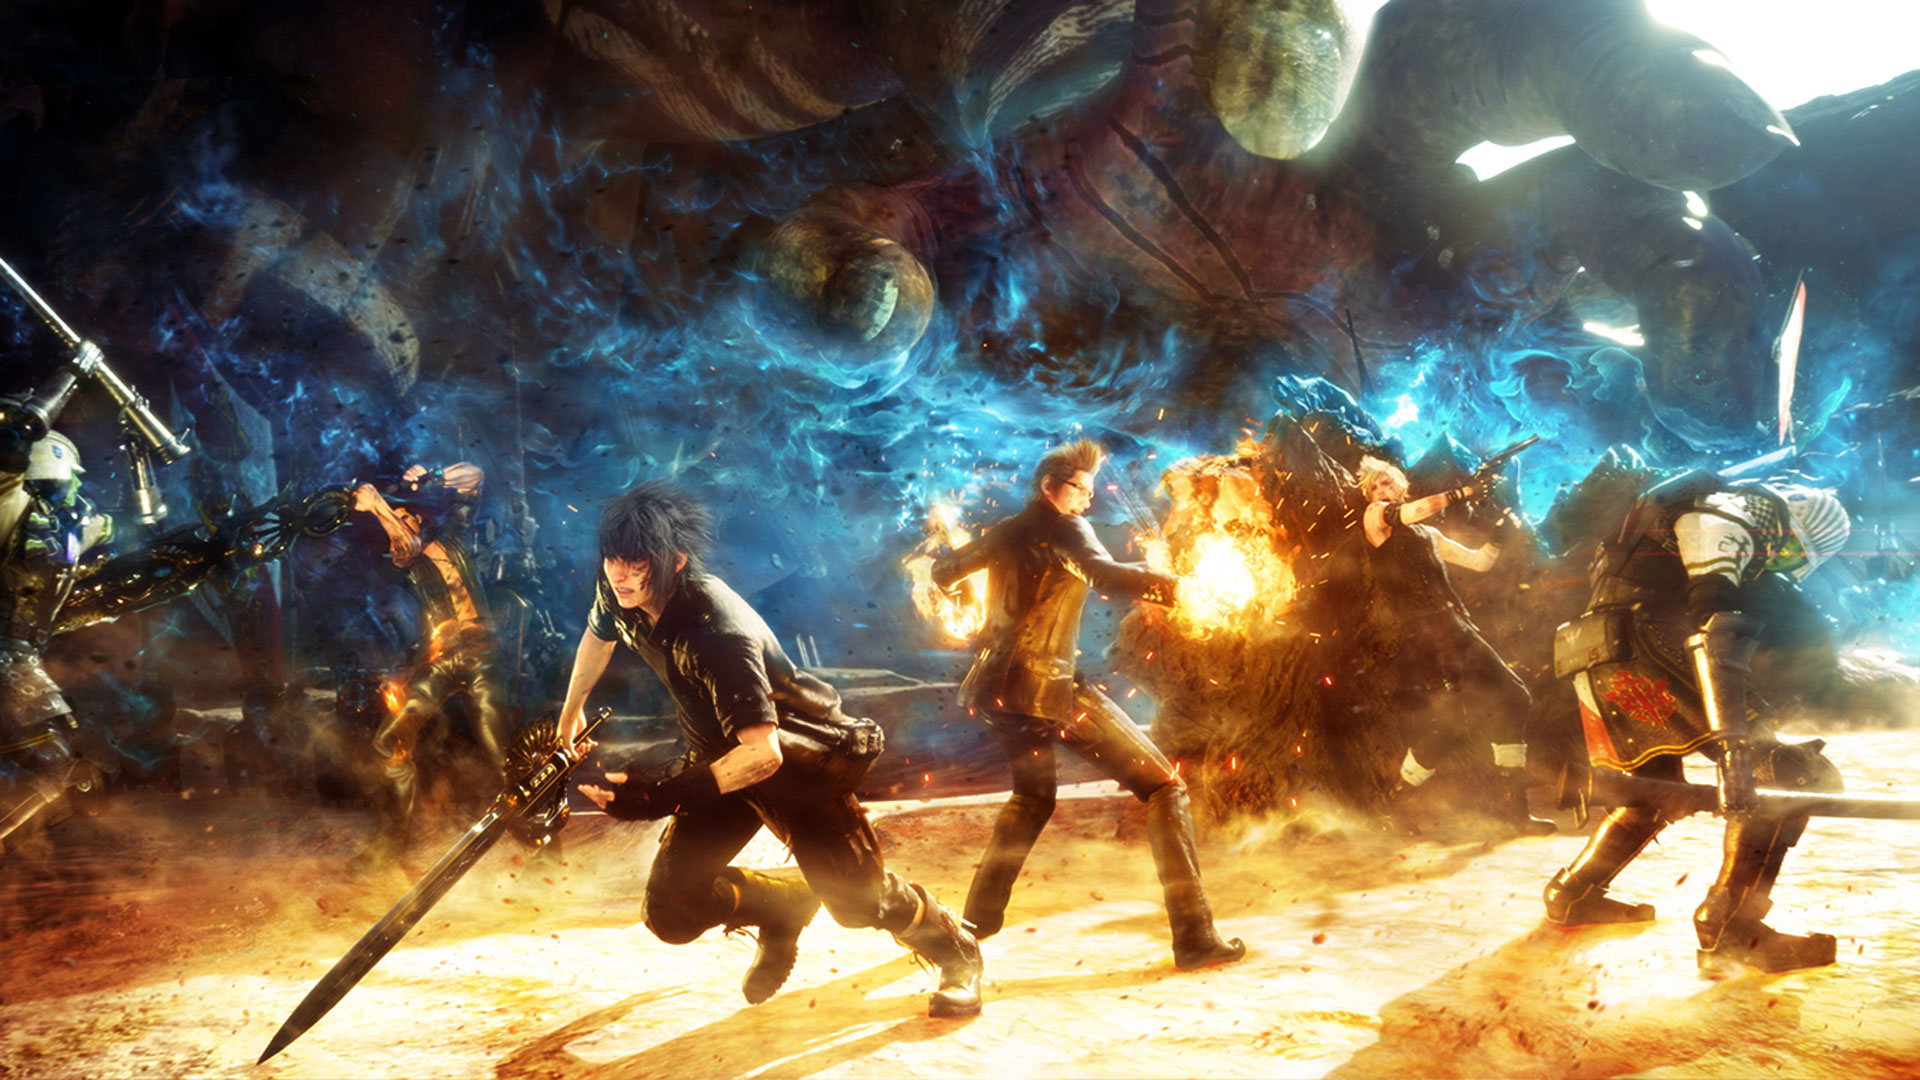 Final Fantasy Xv Wallpaper 78 Images: Final Fantasy XV Wallpapers In Ultra HD